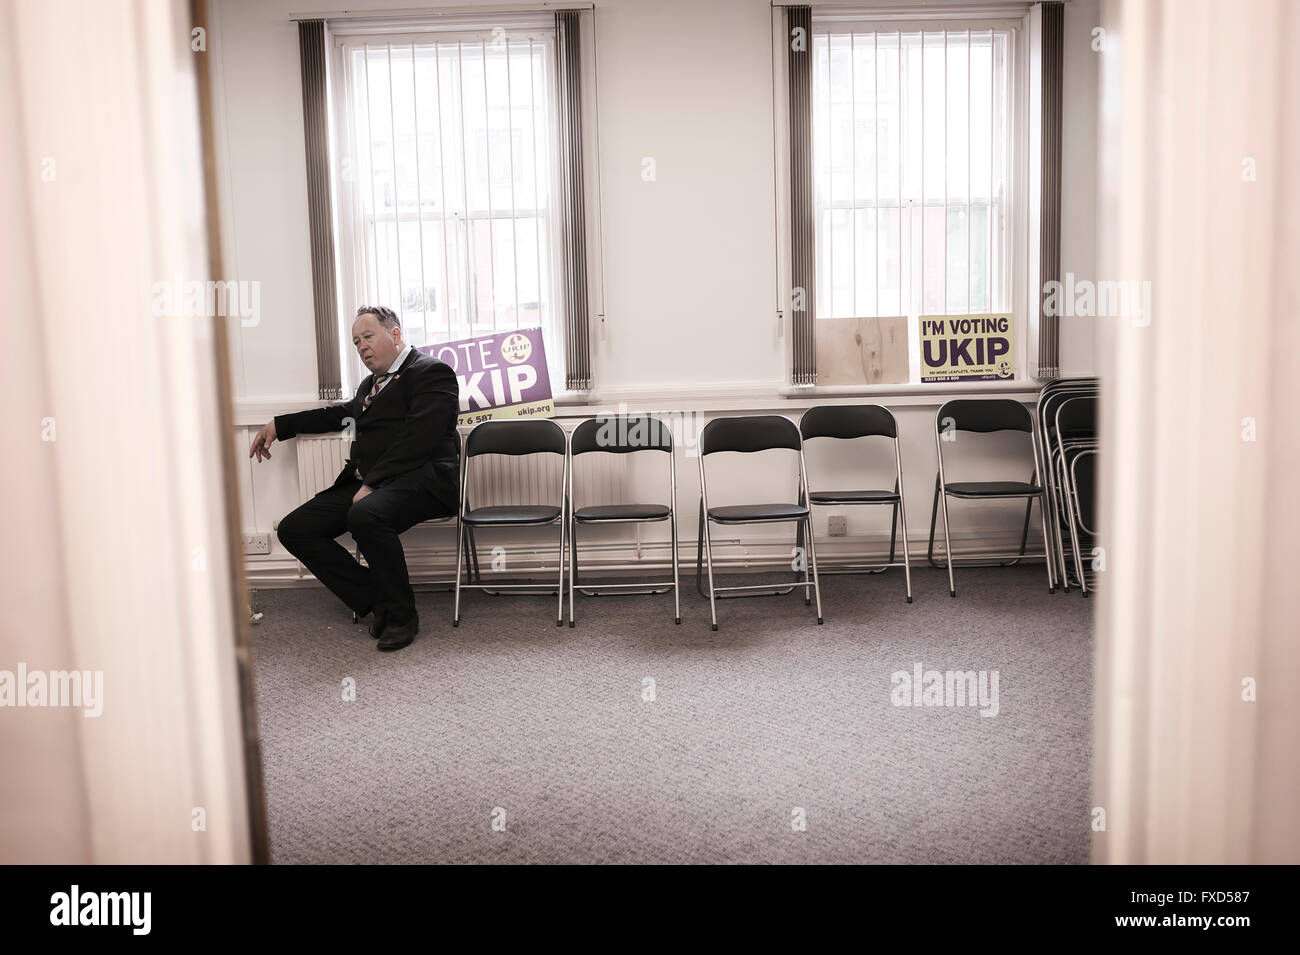 UKIP candidate Simon Tobin, standing for parliamentary seat in the Waveney General elections - documentary from - Stock Image